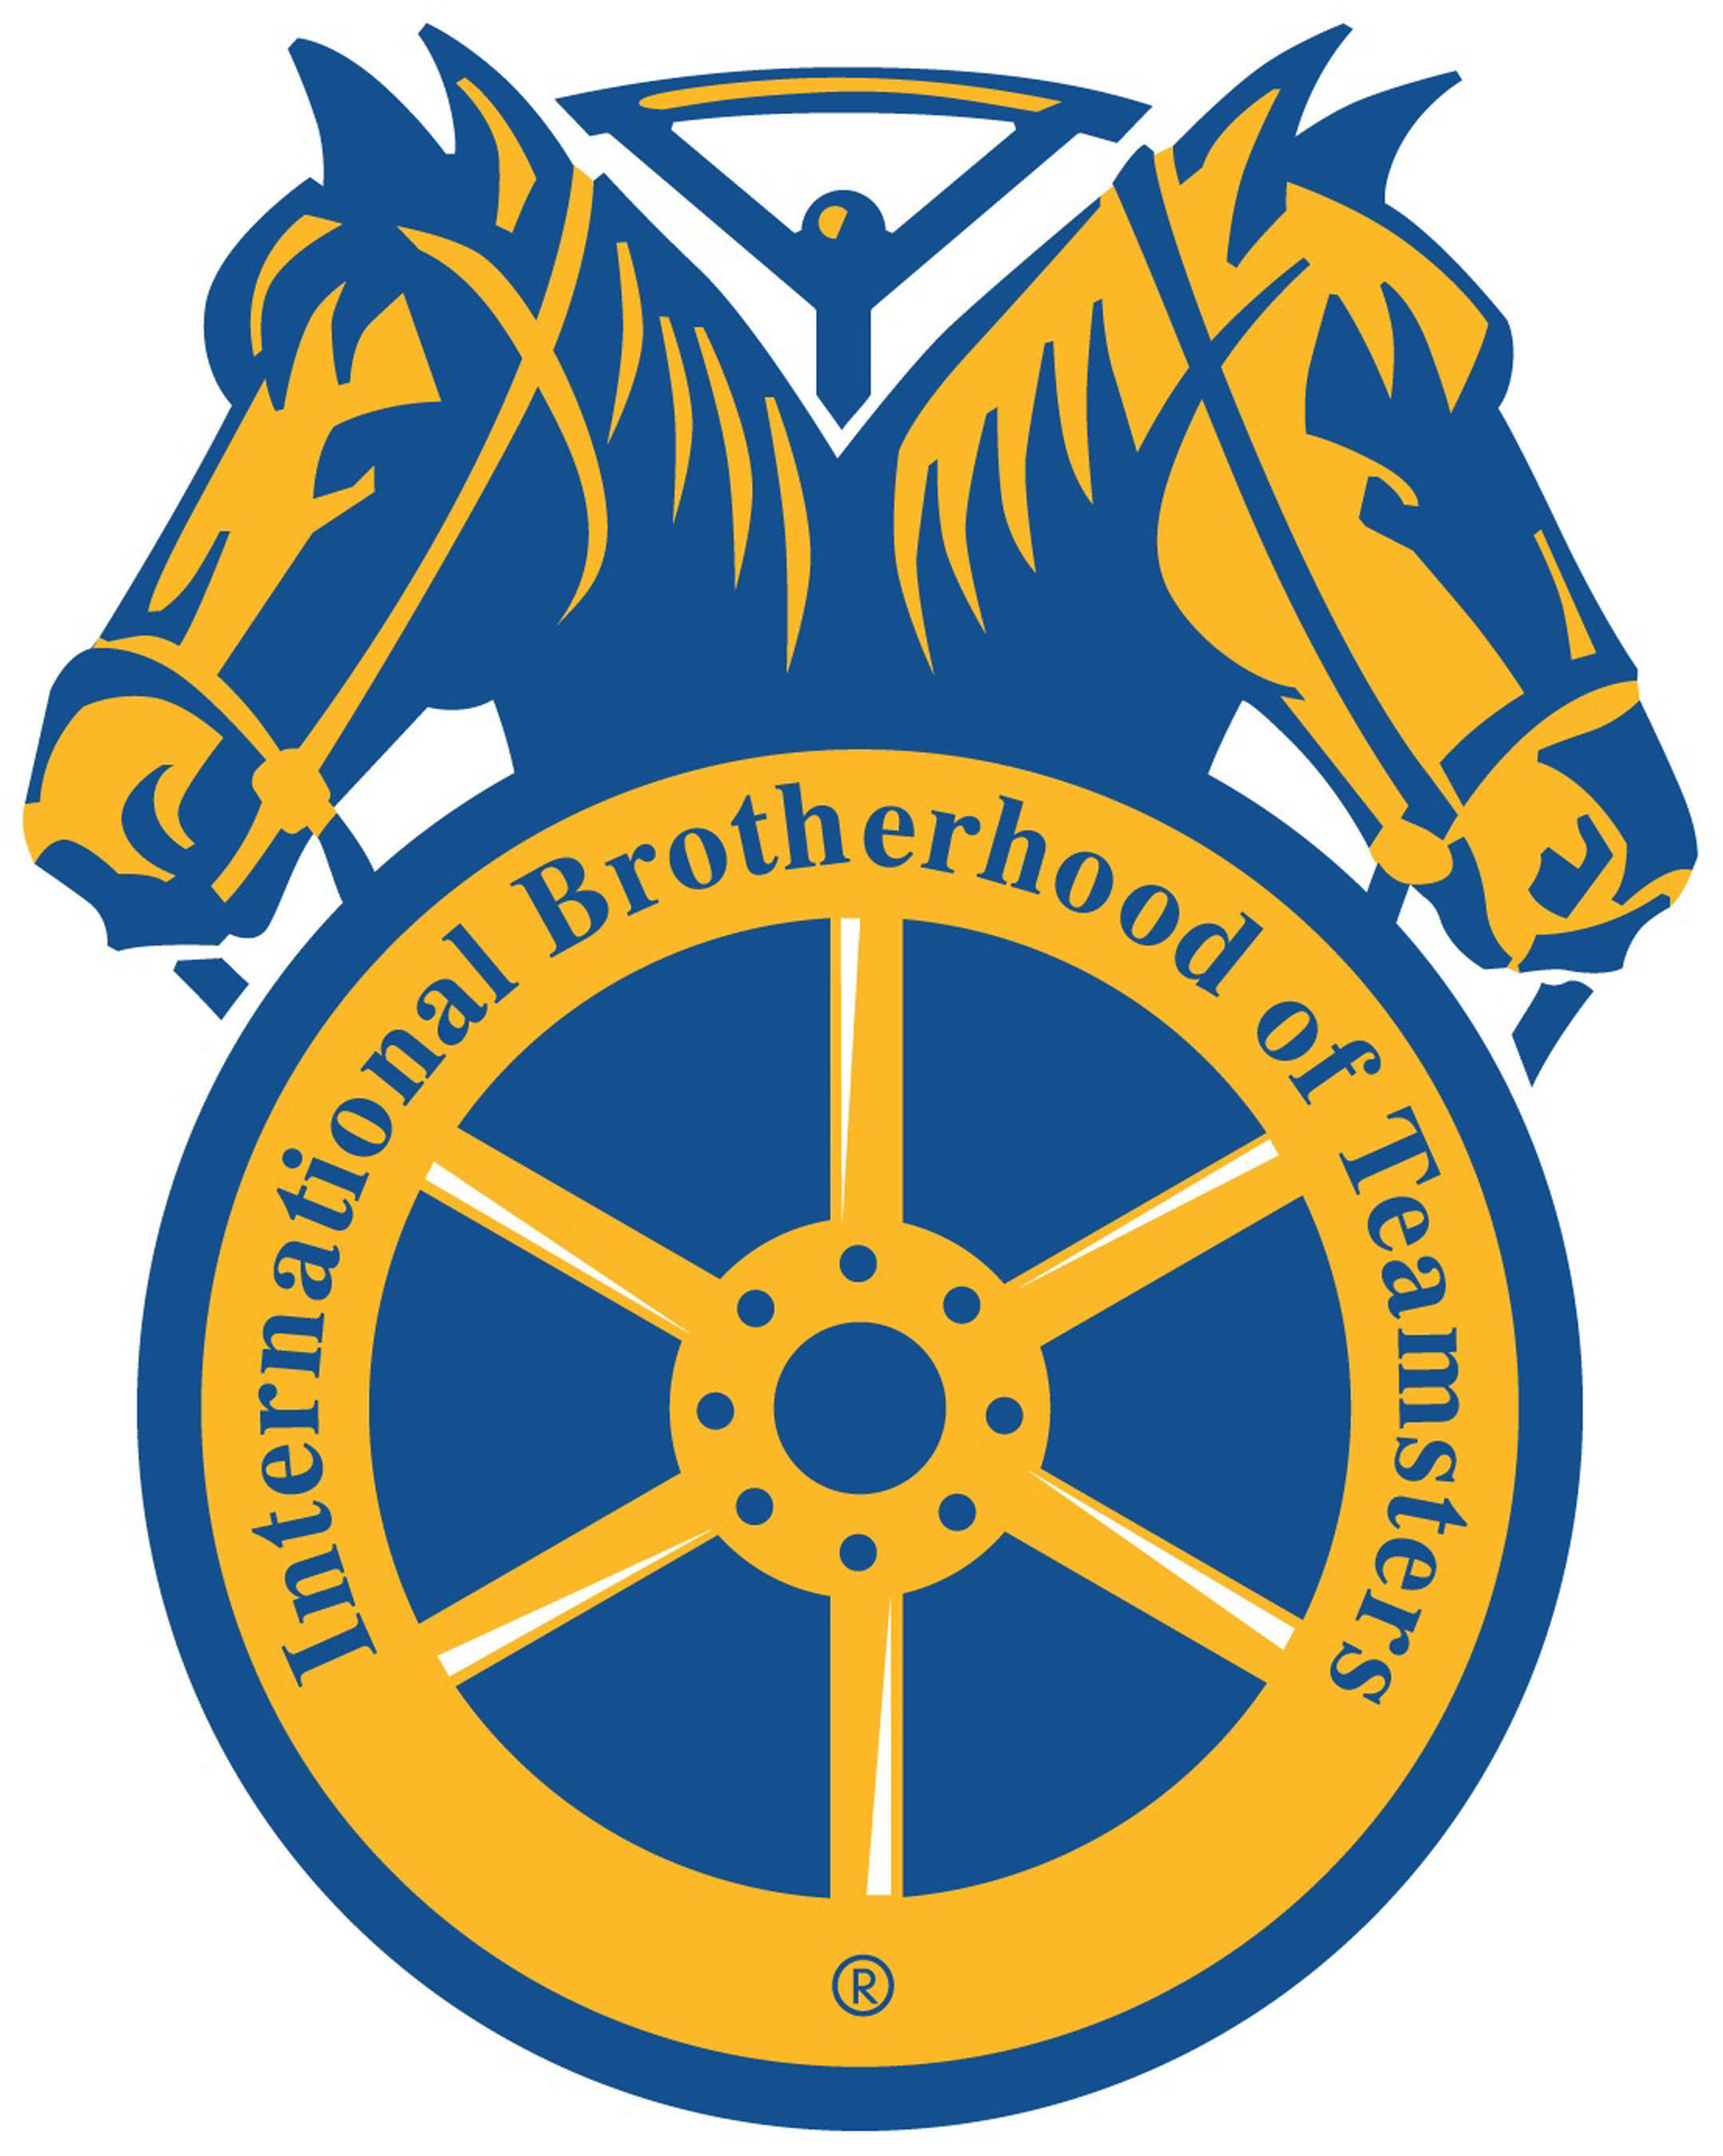 International Brotherhood Of Teamsters. (PRNewsFoto/International Brotherhood of Teamsters)